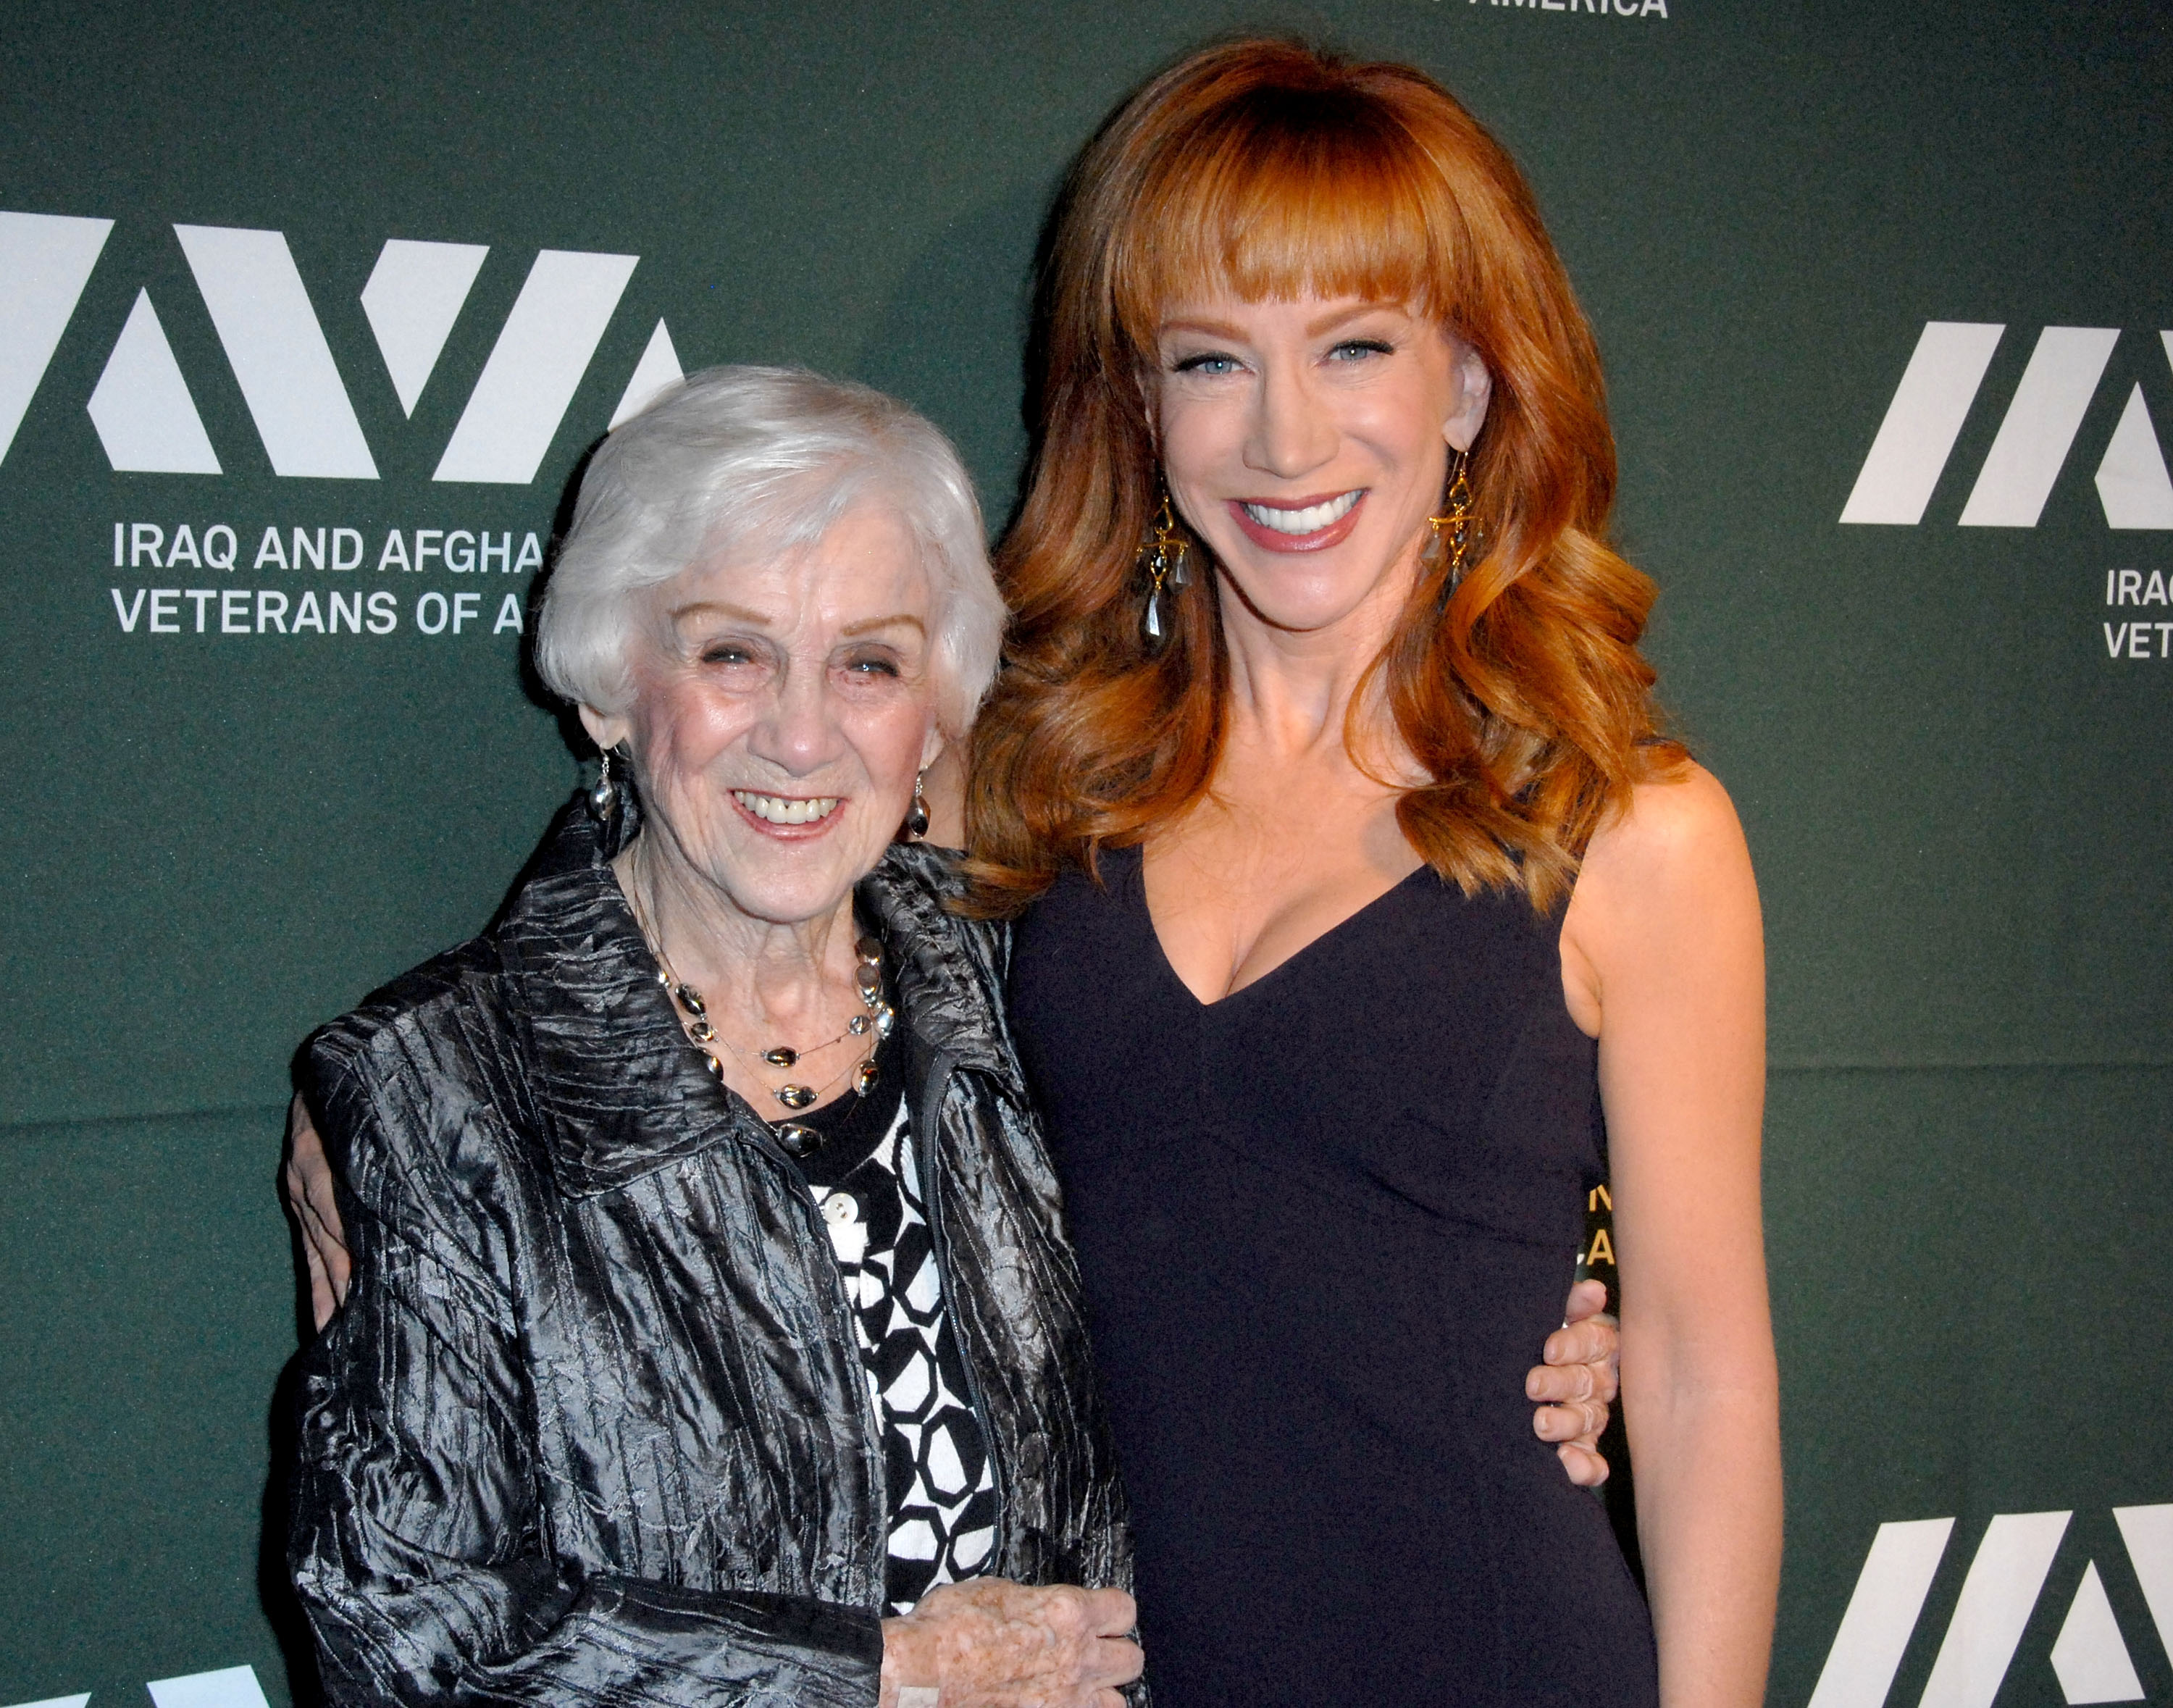 Kathy Griffin and mother Maggie Griffin attend the Iraq And Afghanistan Veterans Of America's 5th Annual Heroes Celebration on May 8, 2013. | Source: Getty Images